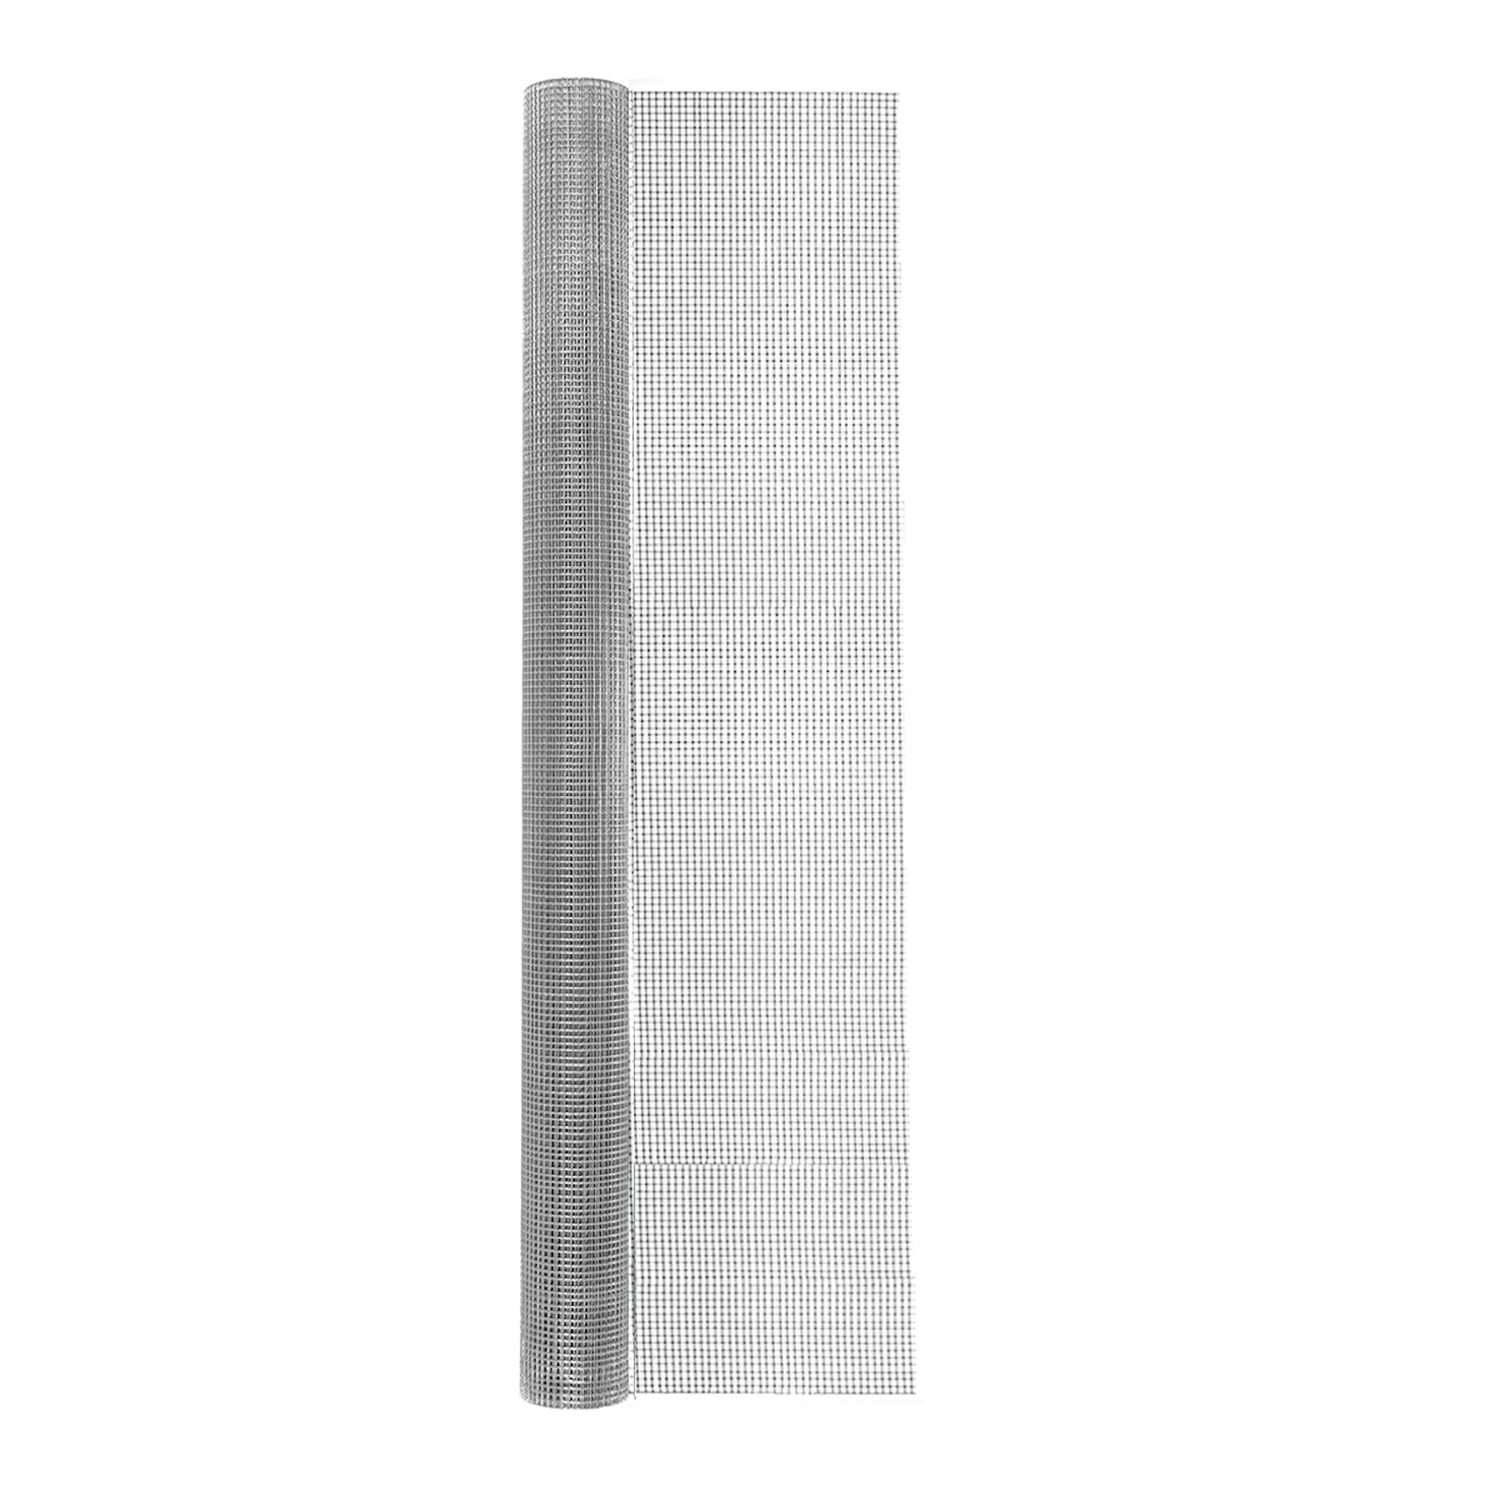 Stainless Steel Wire Ace Hardware - WIRE Center •